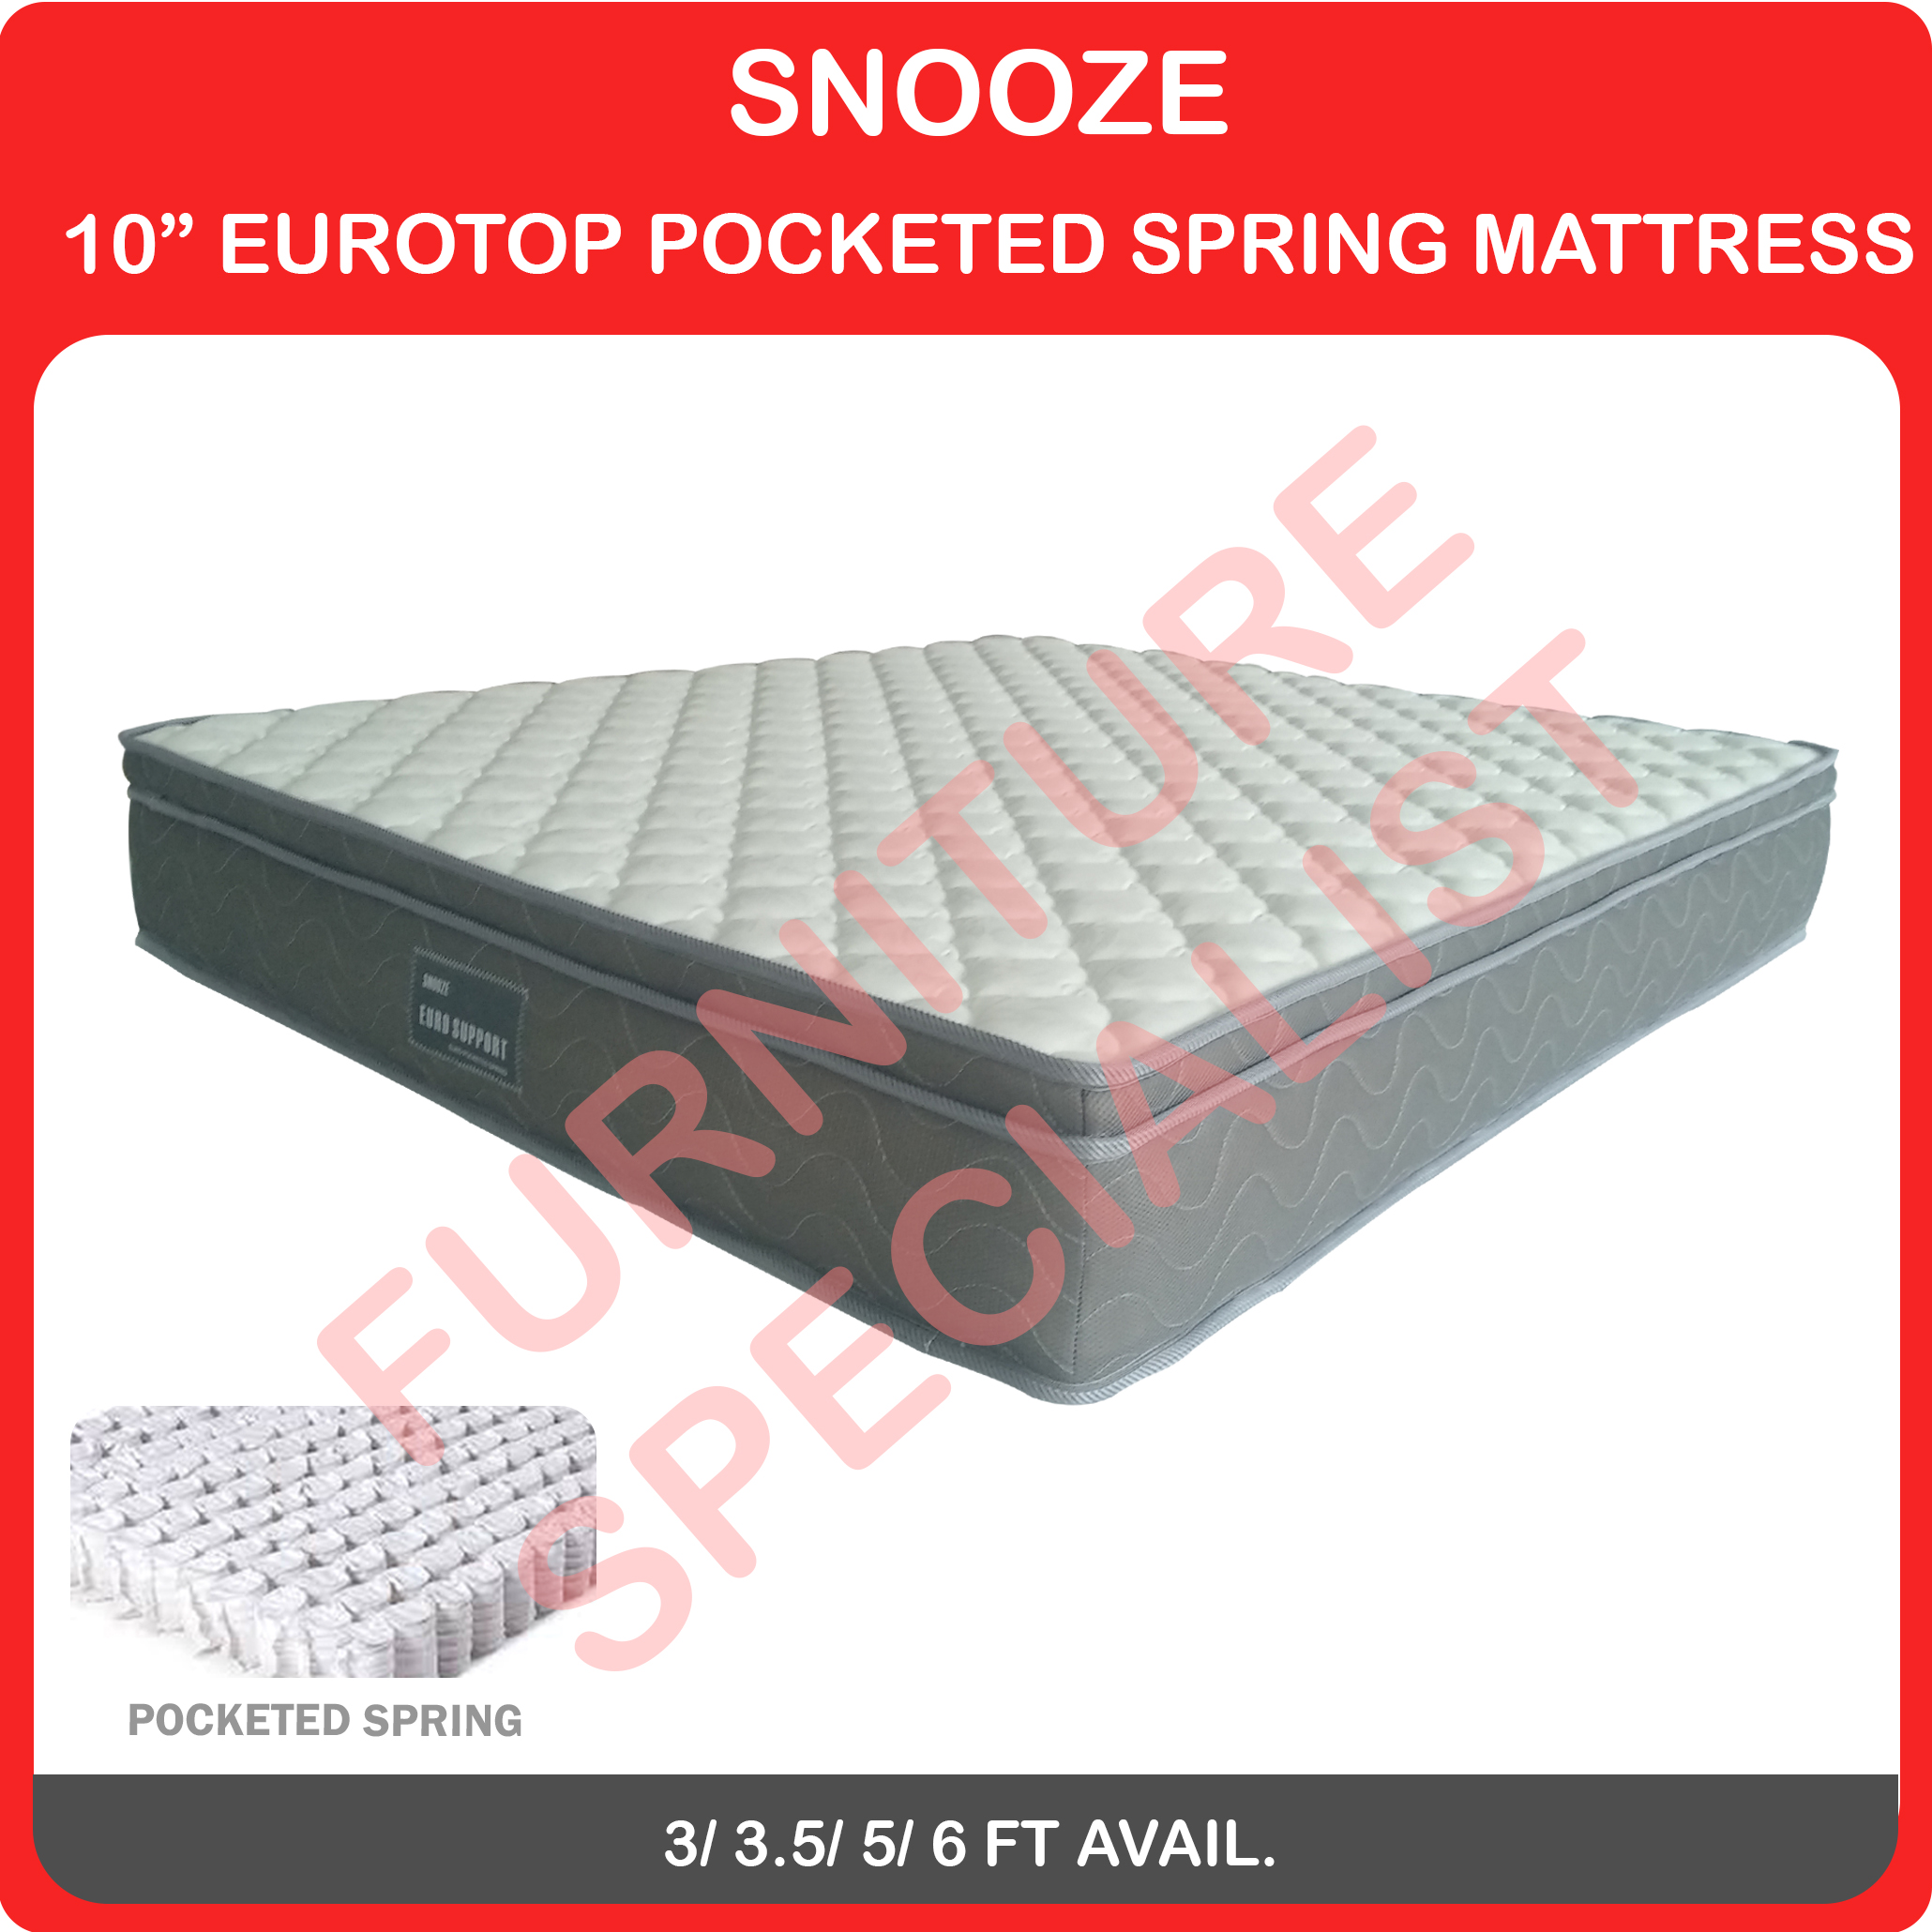 Snooze Eurotop Pocketed Spring Mattress